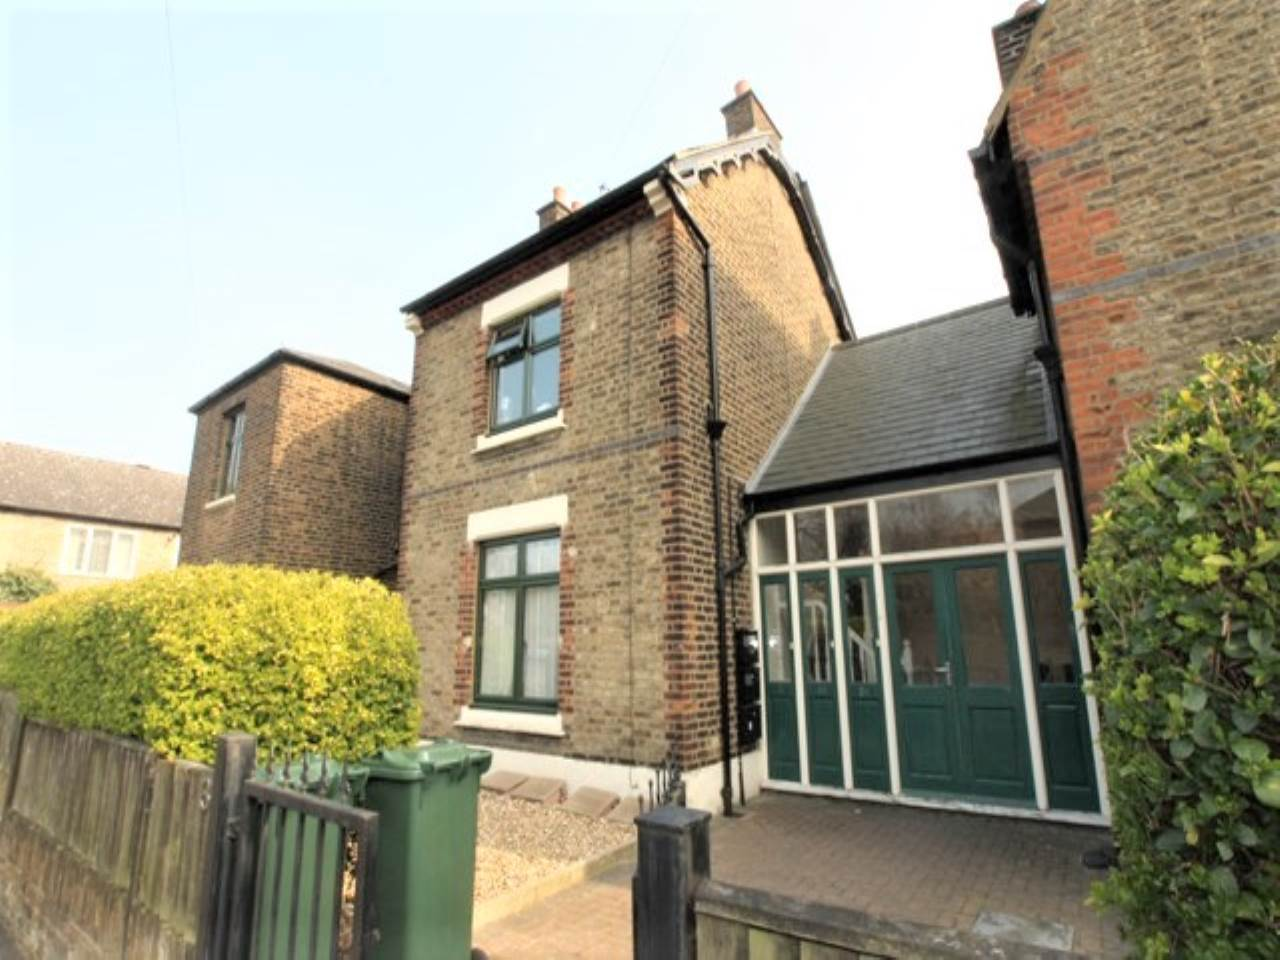 2 bed flat to rent in Vestry Road, Walthamstow  - Property Image 1